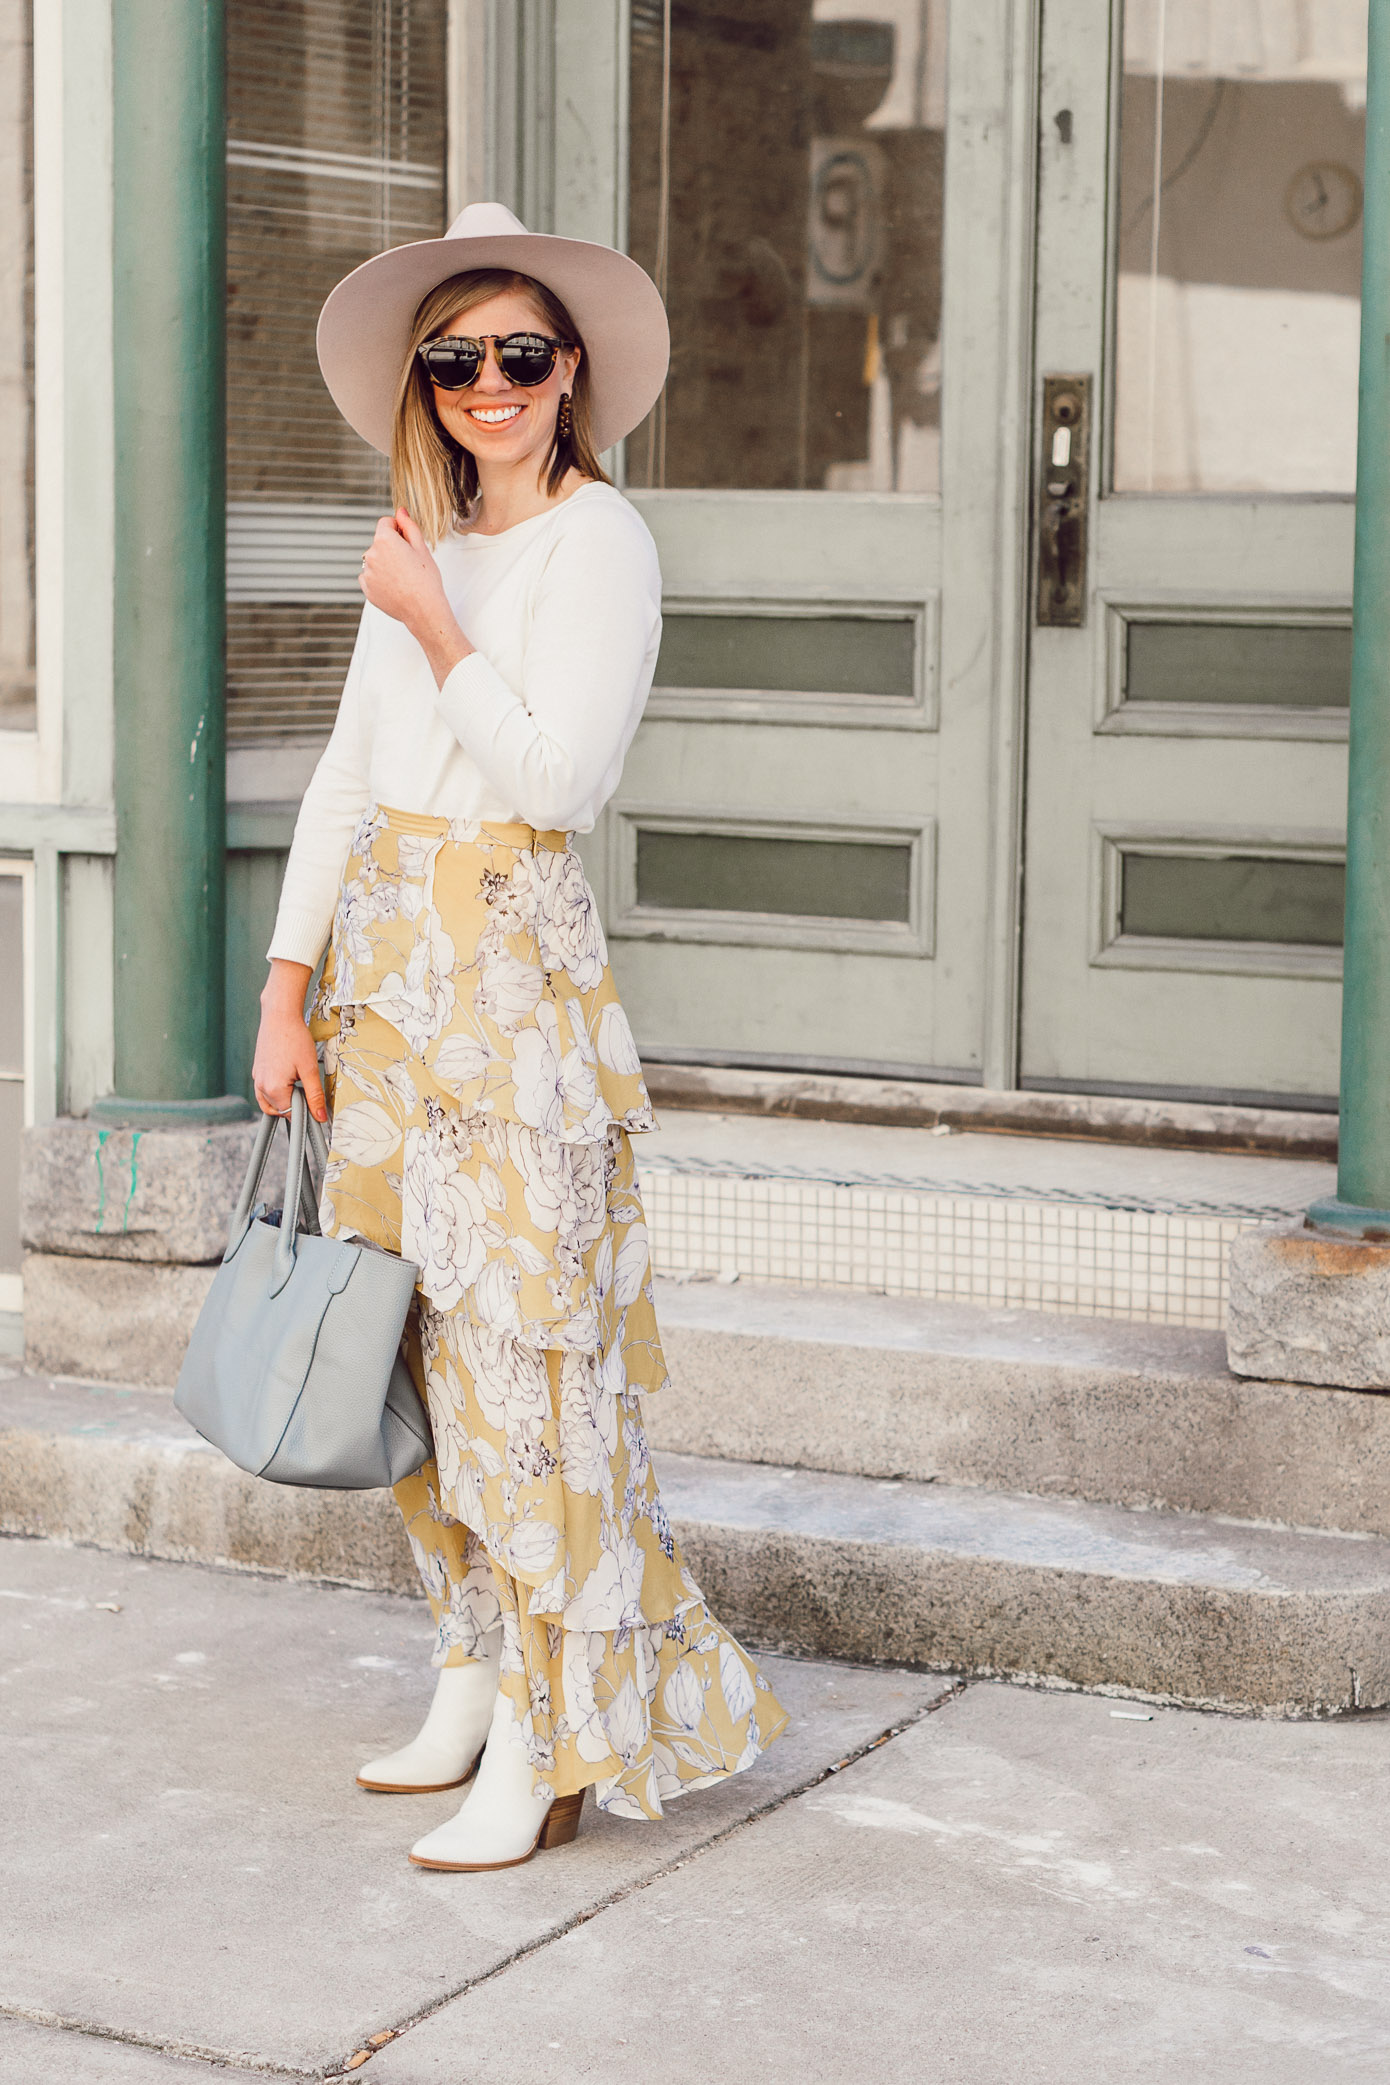 Start Spring In Style With This Yellow Floral Maxi Skirt | Louella Reese